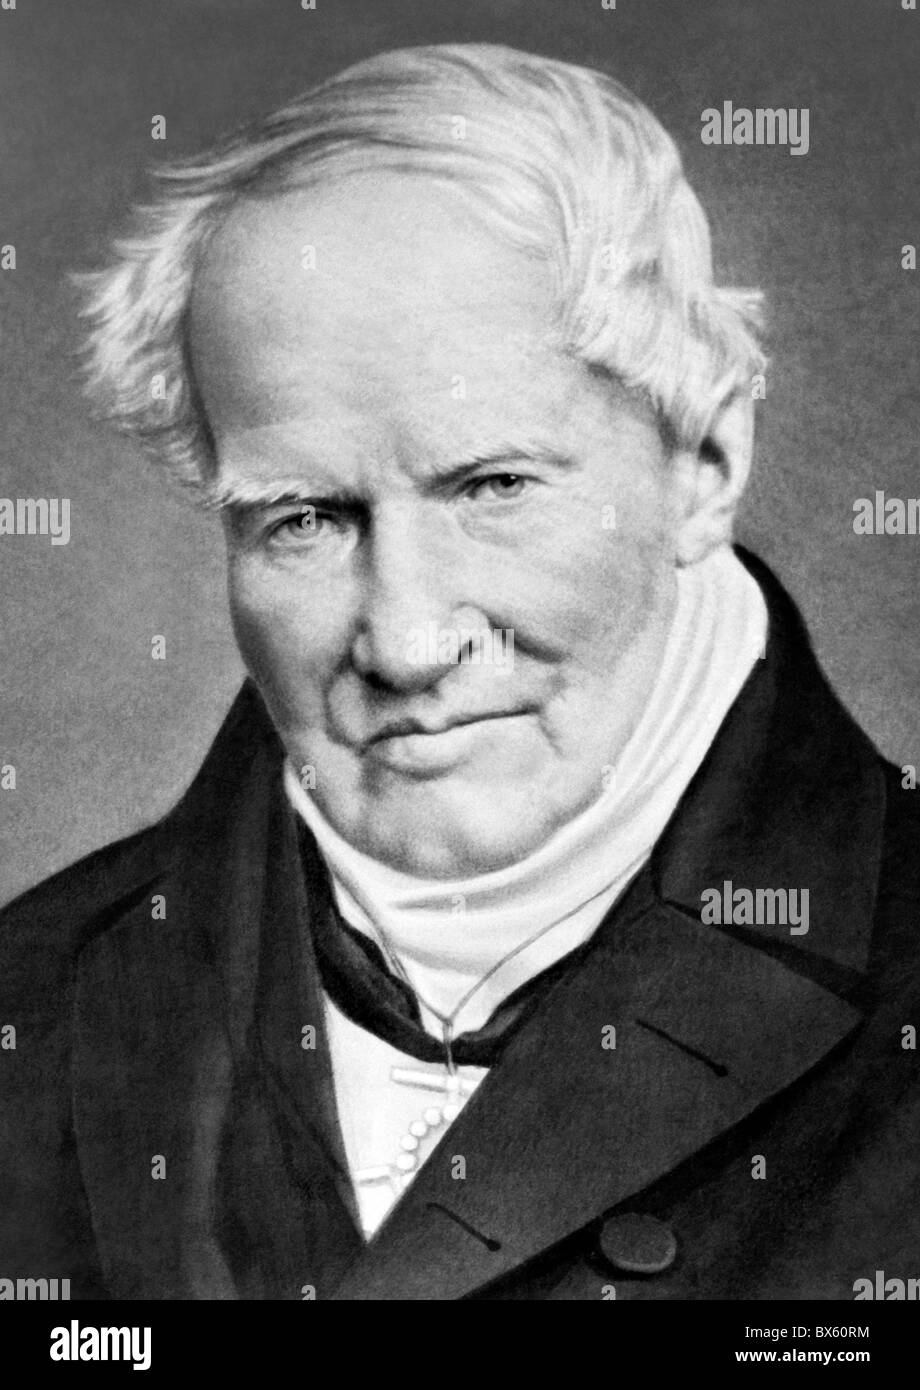 Vintage portrait photo circa 1850s of German naturalist and explorer Alexander Von Humboldt (1769 - 1859). - Stock Image